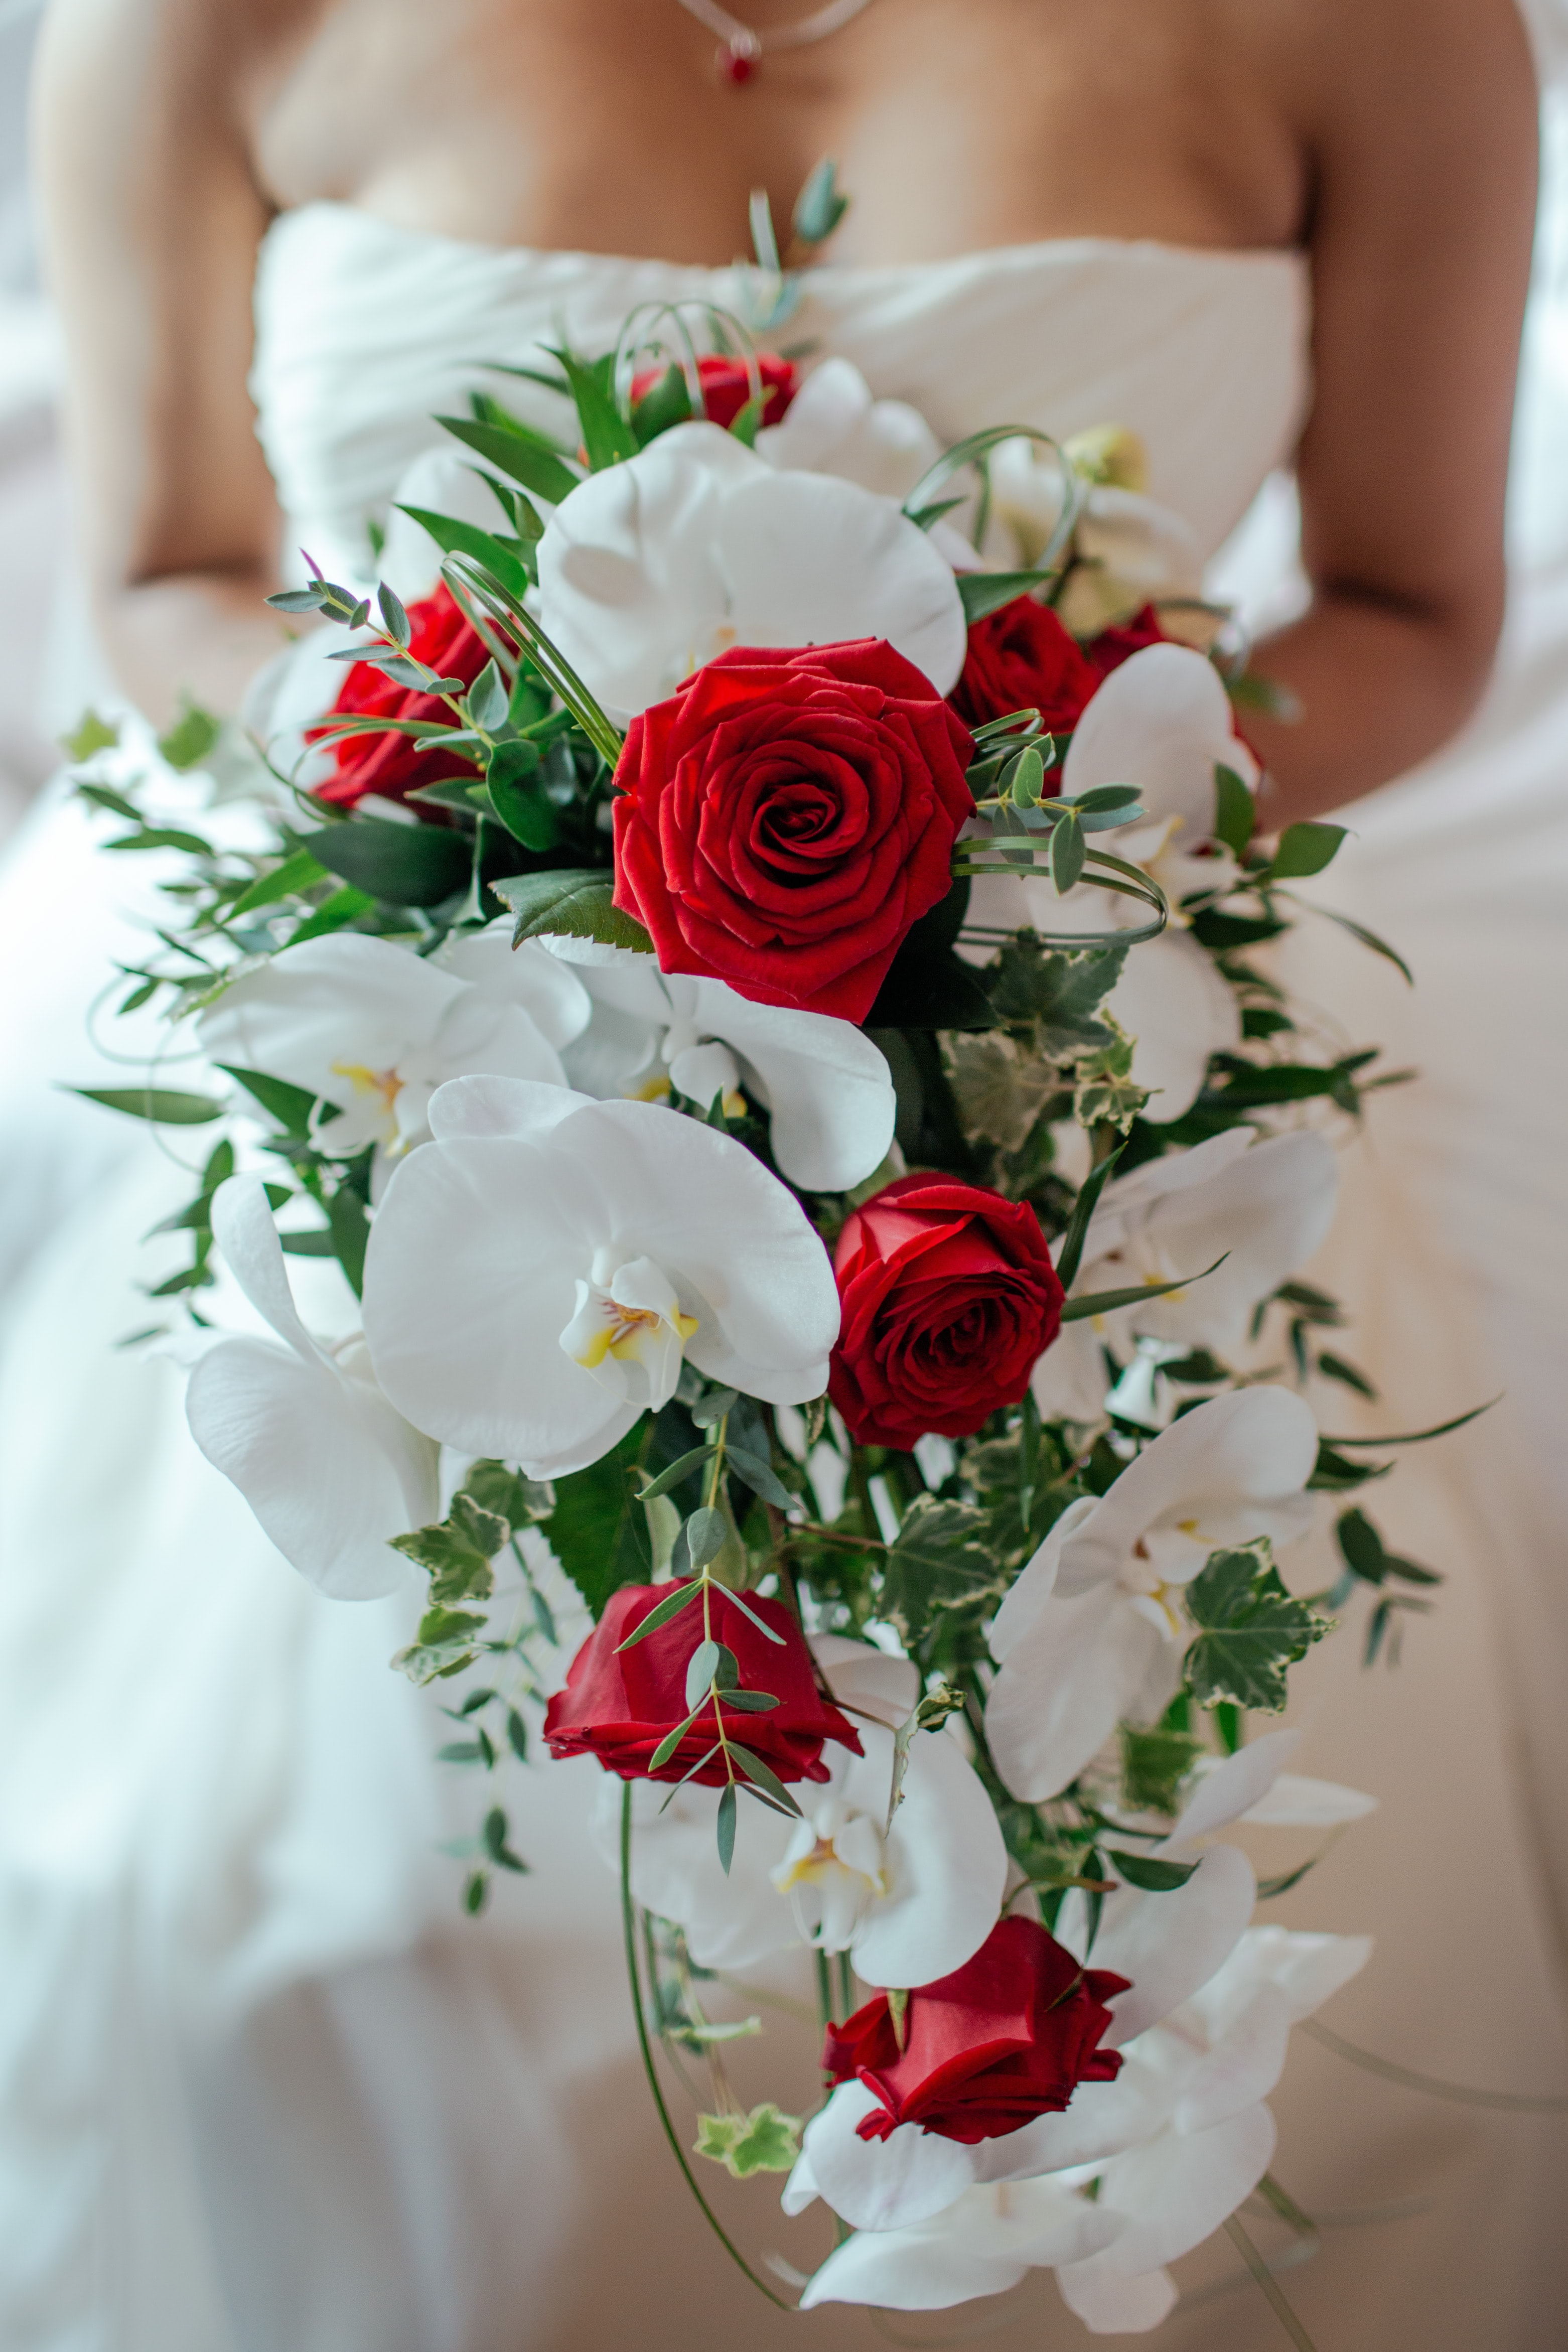 red rose and white orchid bouquet